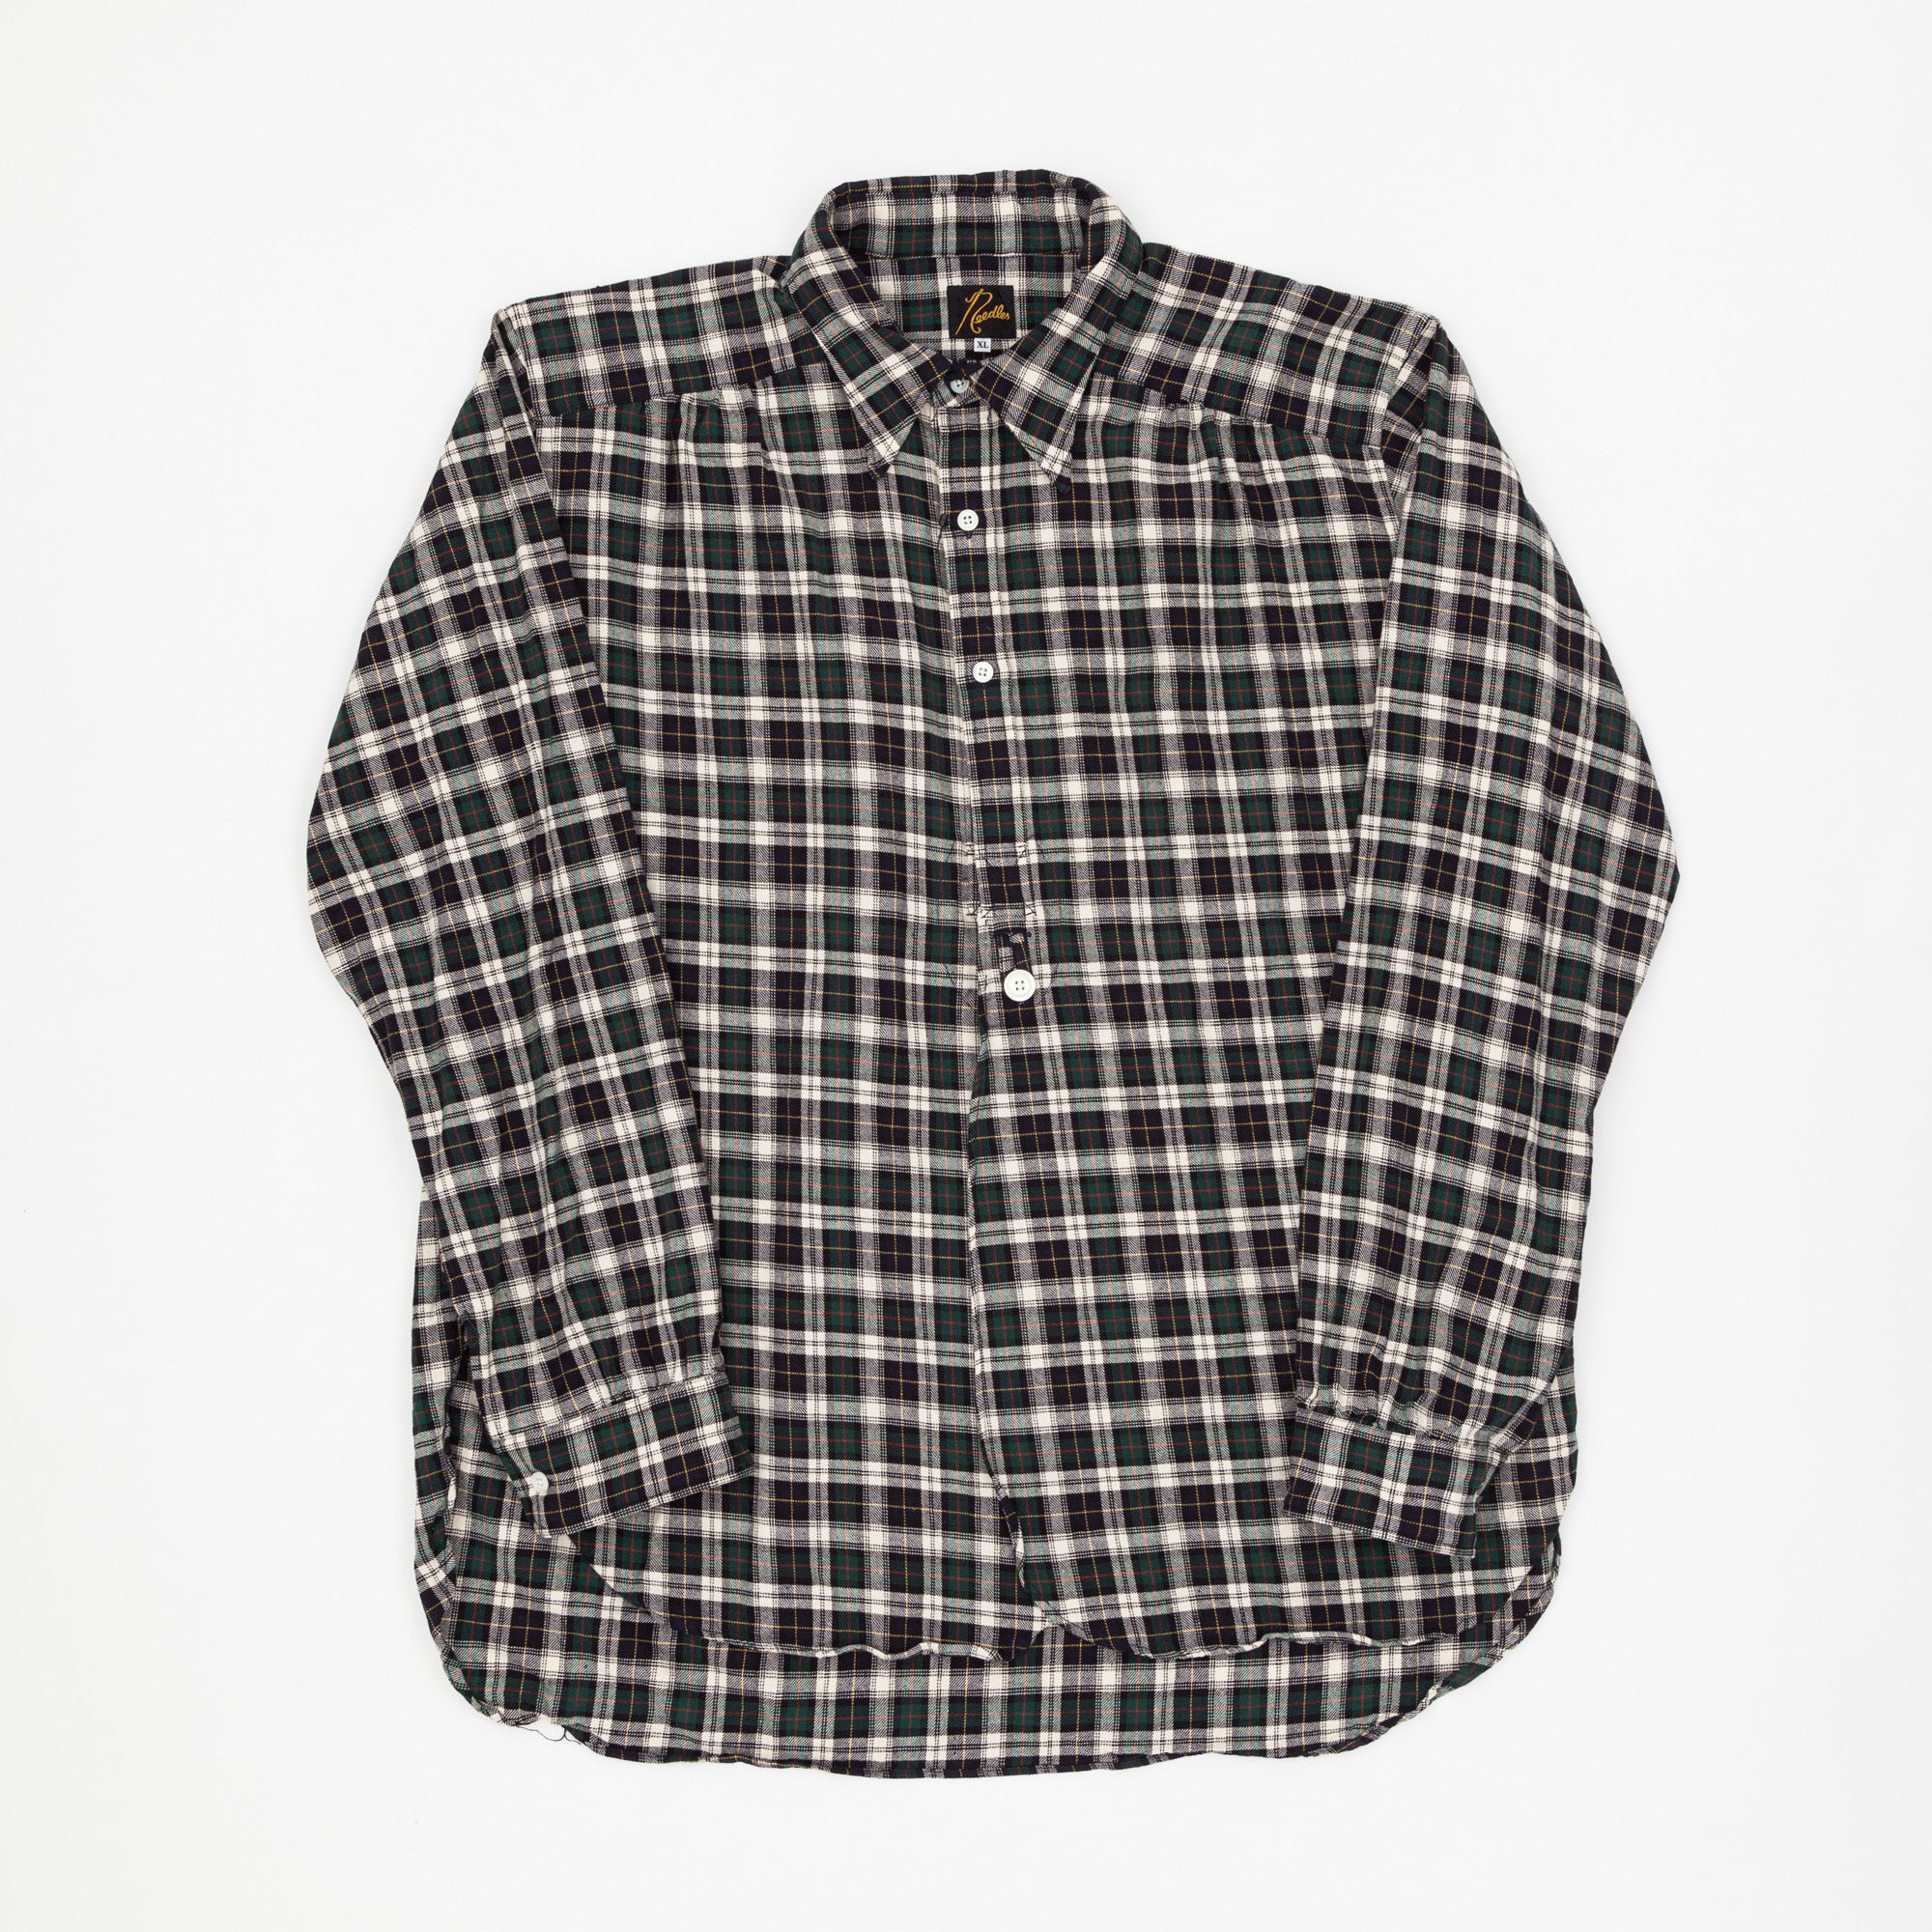 Tartan 1/2 Button Down Shirt